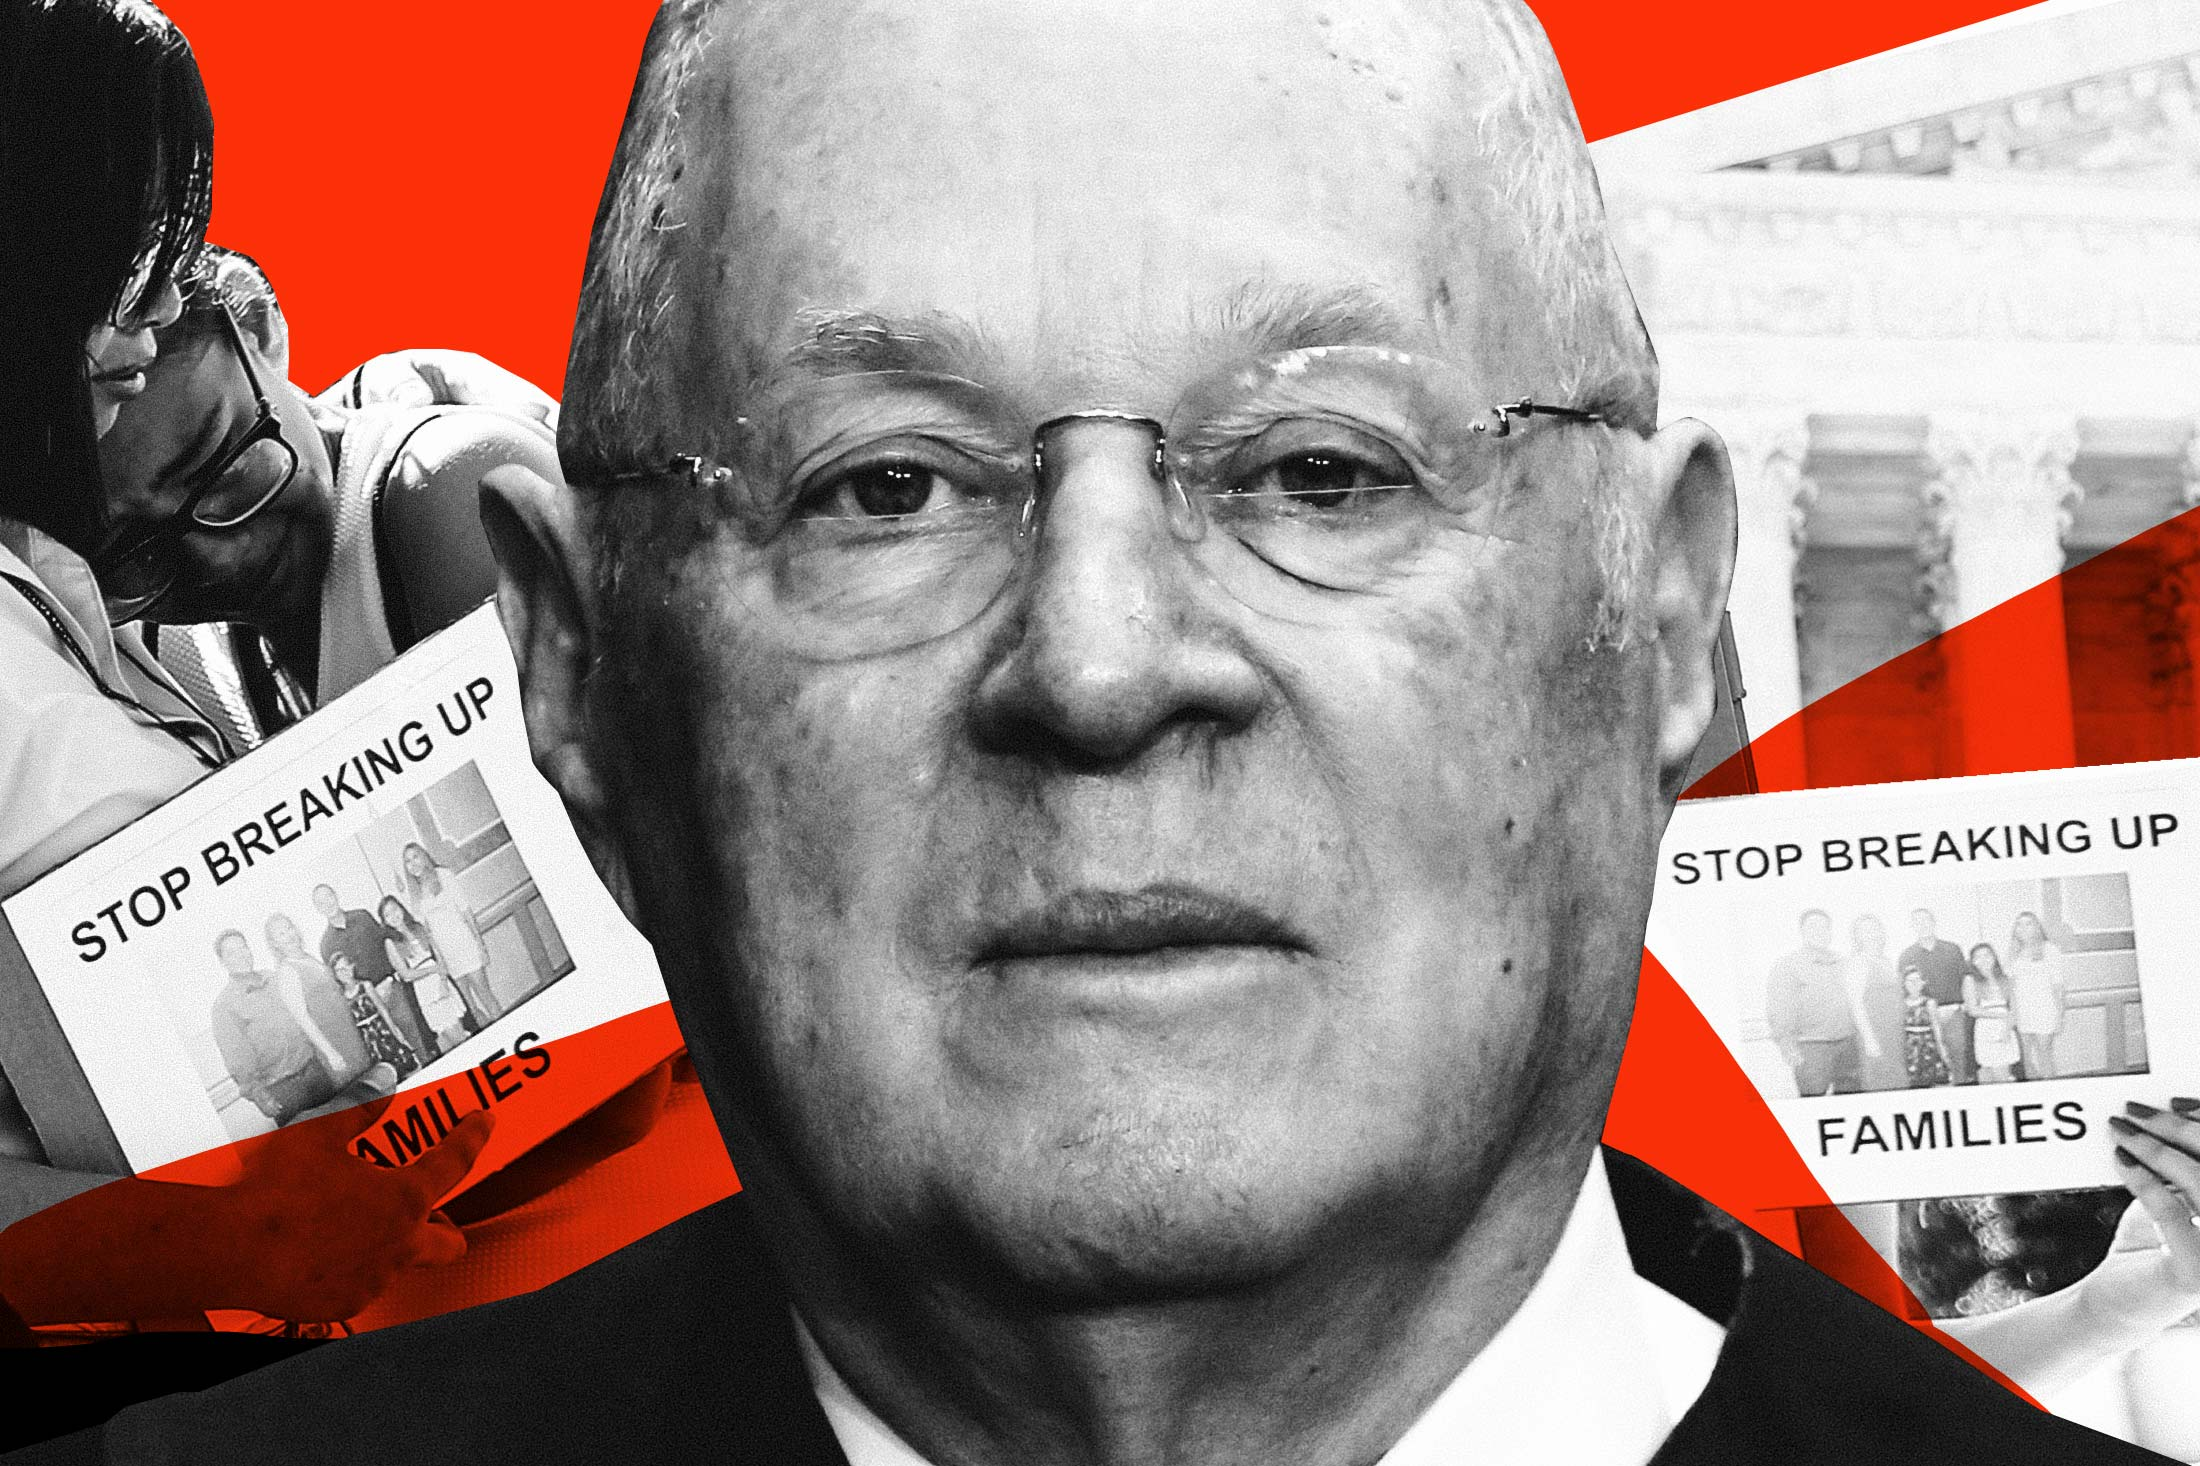 Photo illustration: An image of Justice Anthony Kennedy flanked by images of protests against the administration's family separation policy.